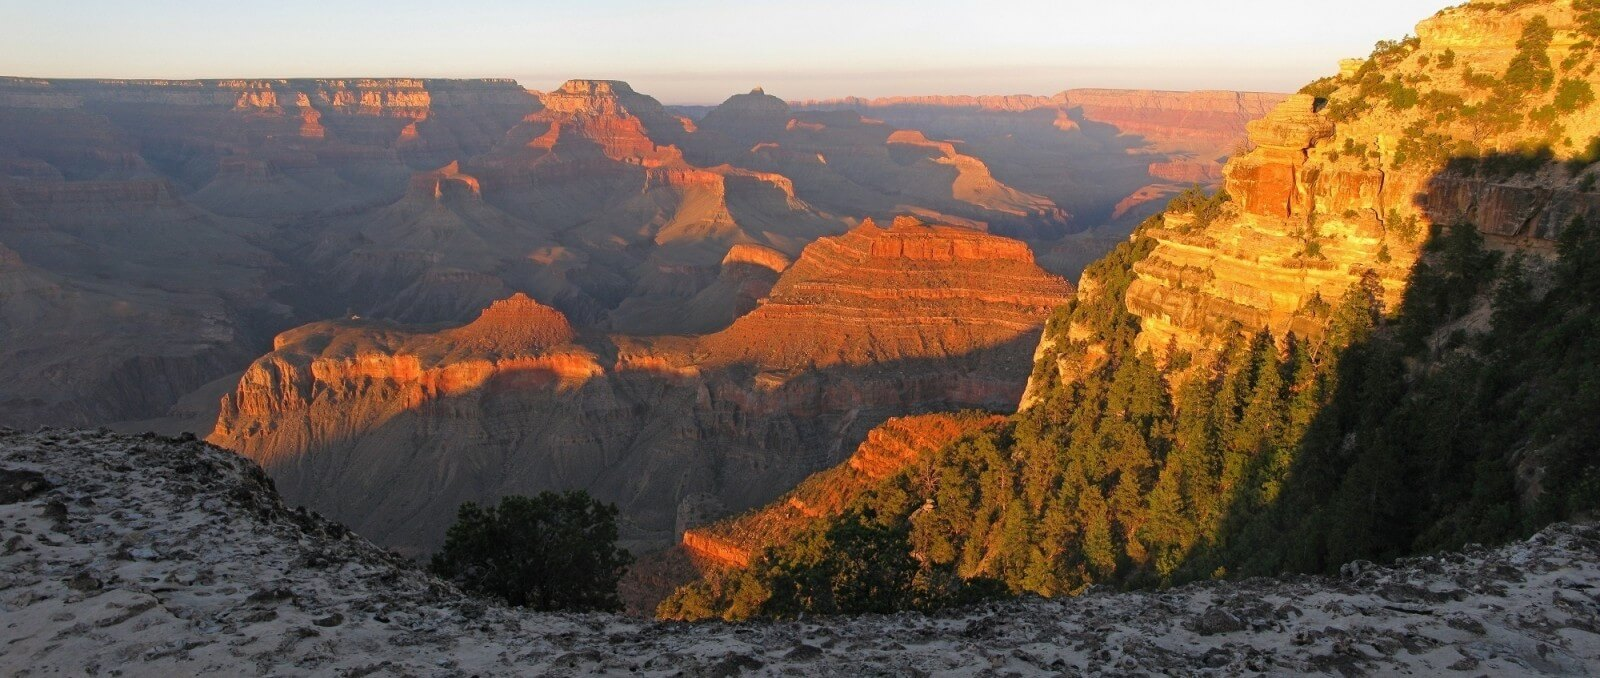 grand-canyon-landscape-scenic-rock-erosion-geology-3